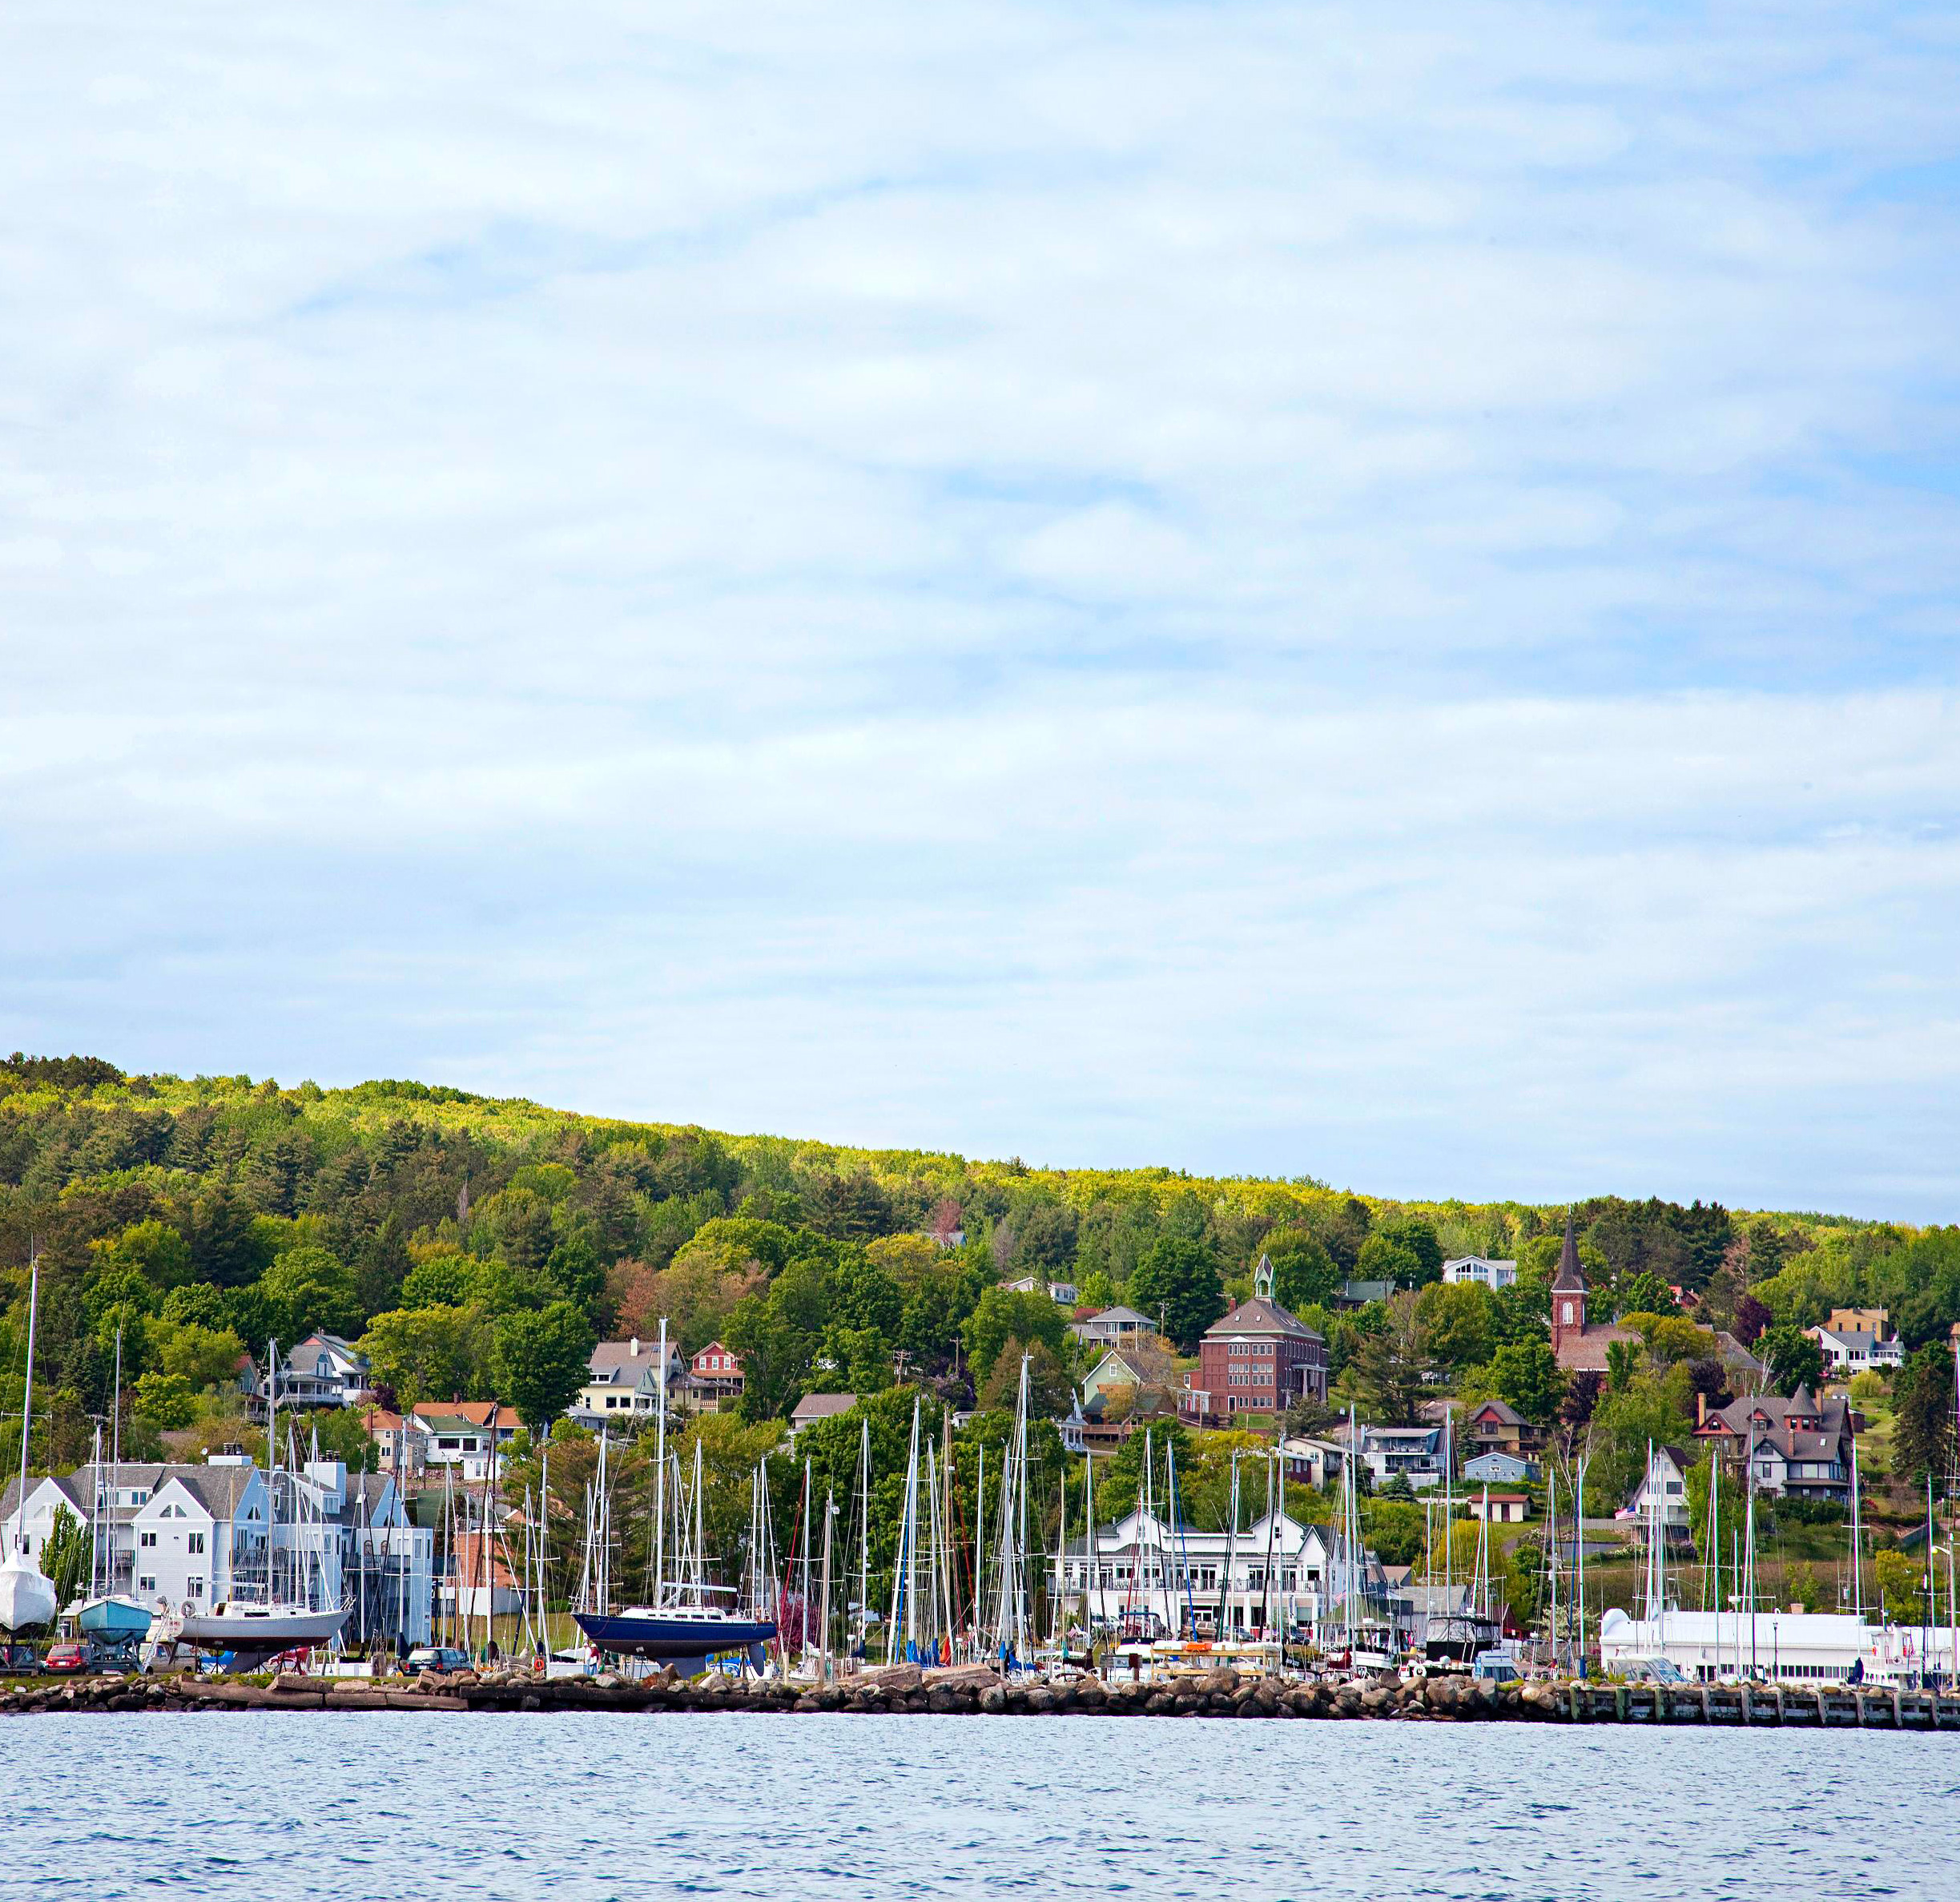 Planning your Bayfield trip